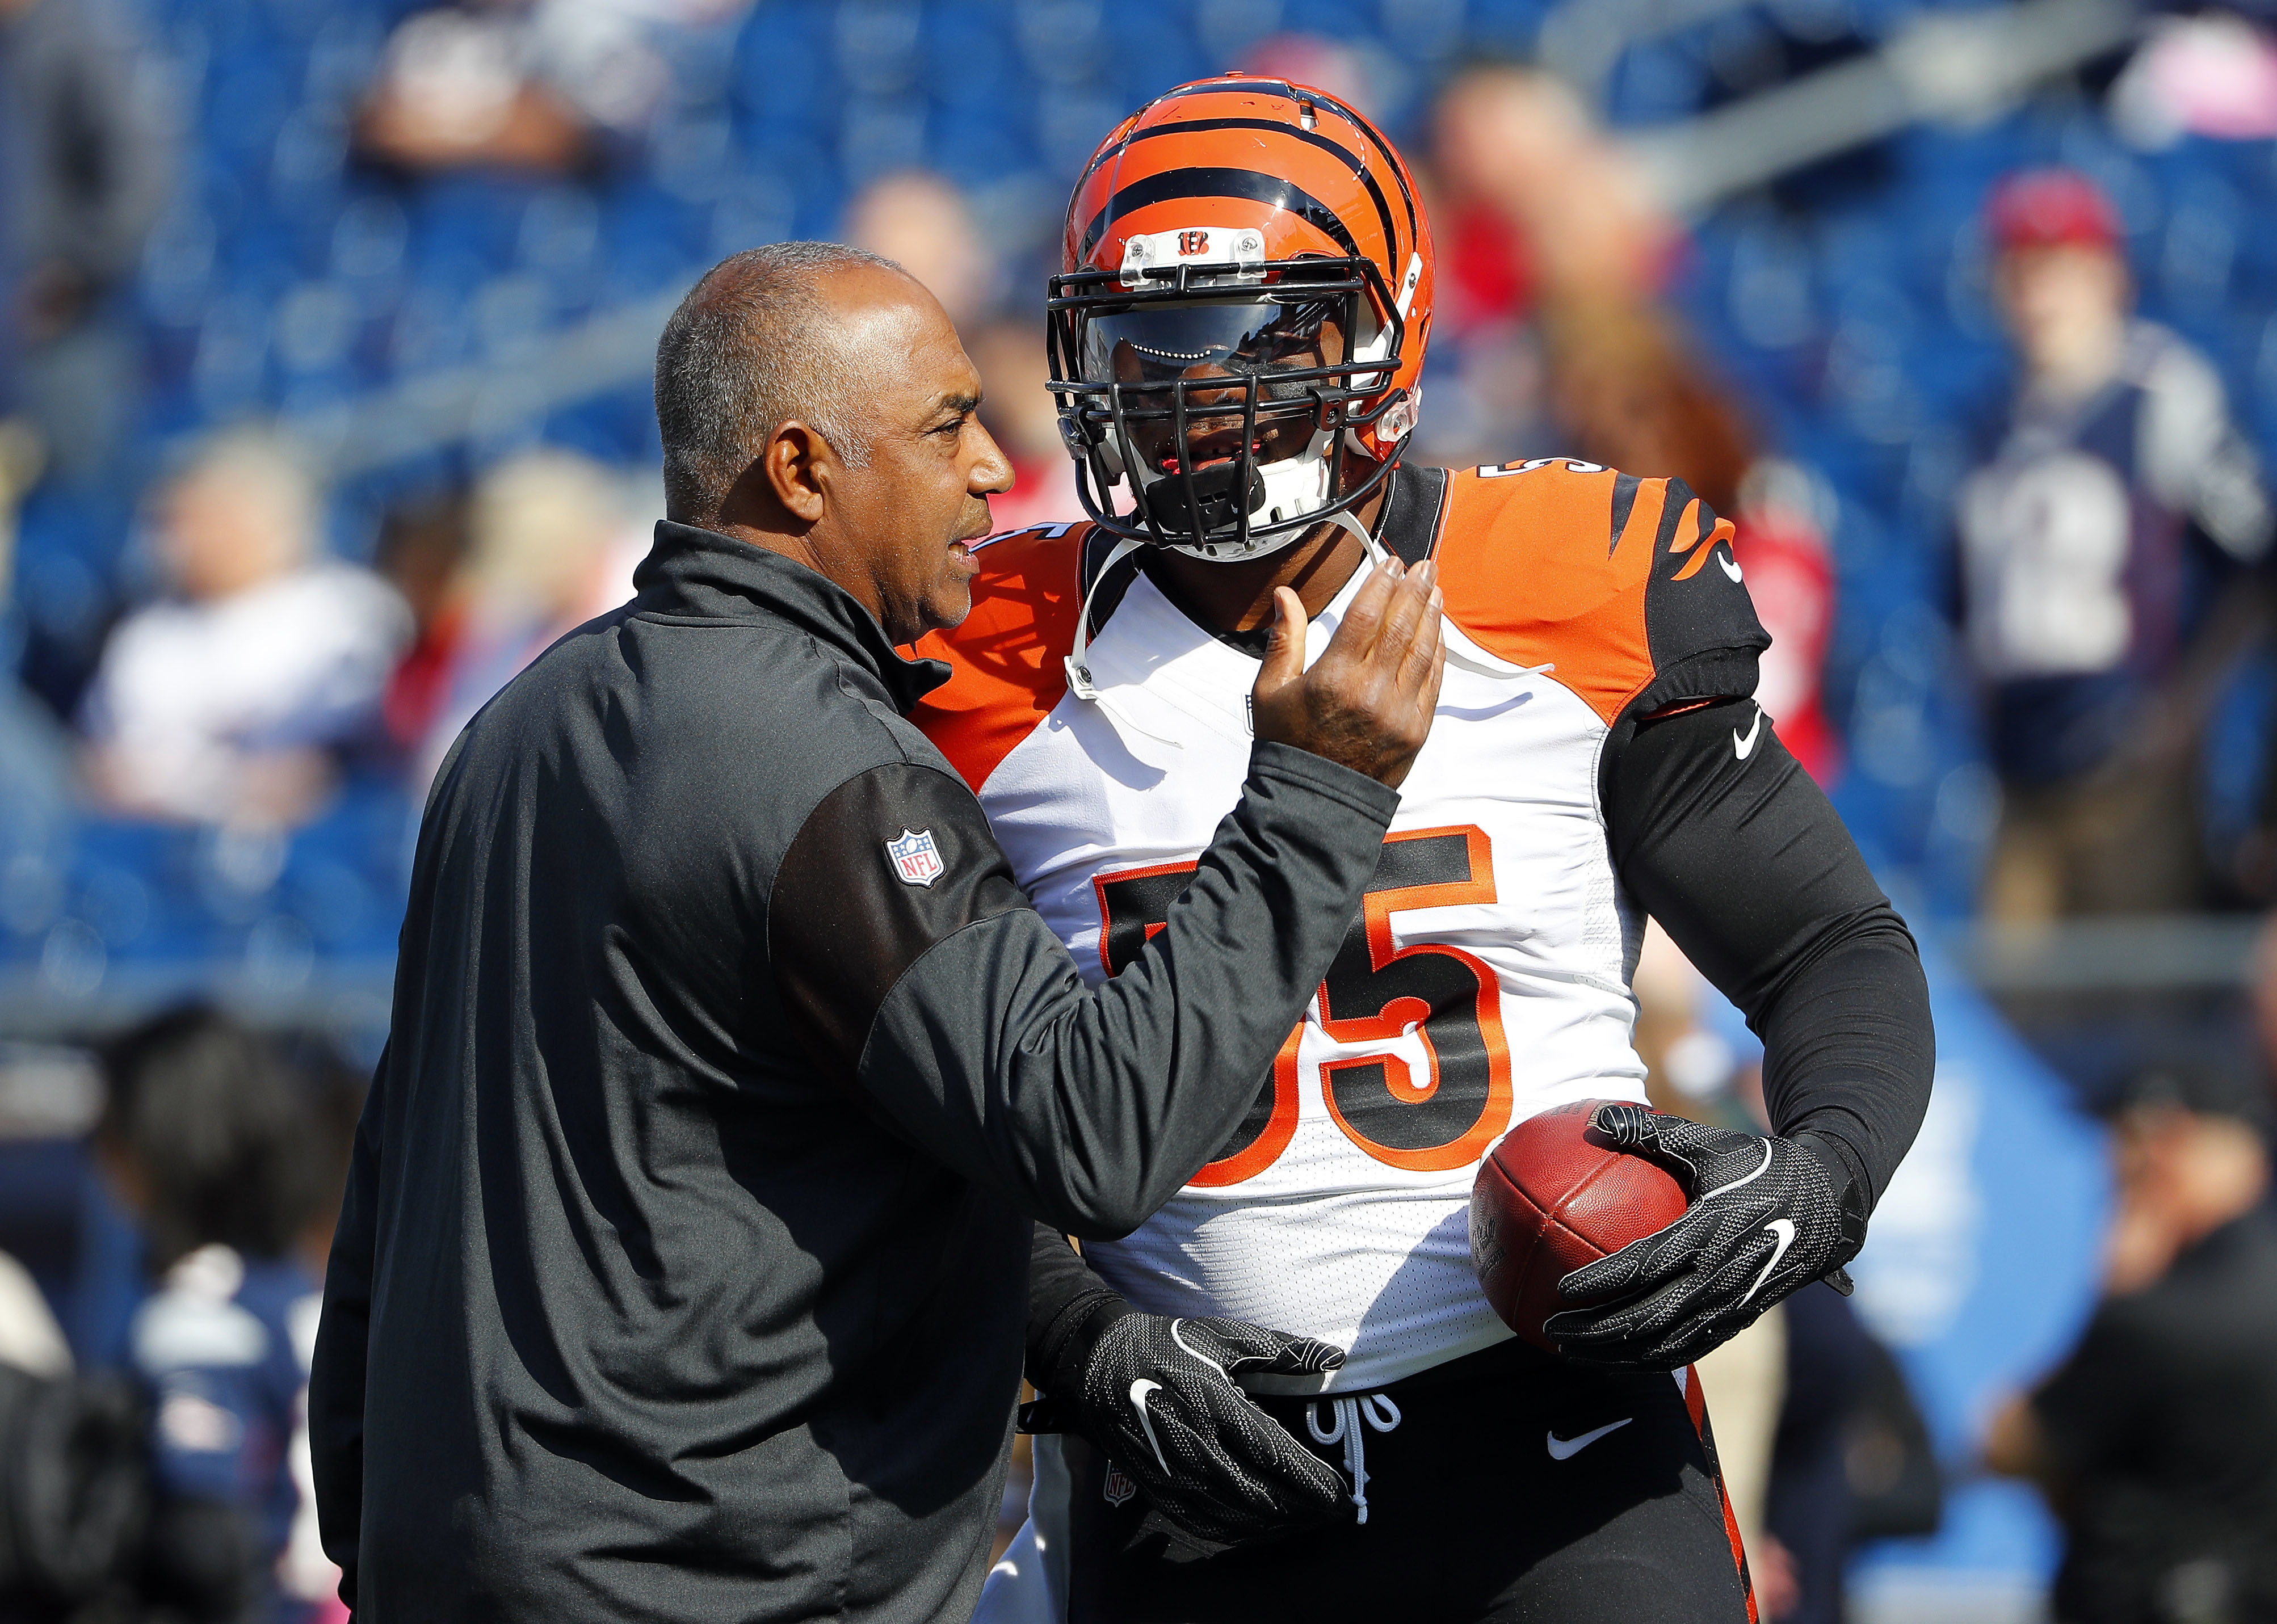 FILE - In this Oct. 16, 2016, file photo, Cincinnati Bengals head coach Marvin Lewis talks with outside linebacker Vontaze Burfict before their NFL football game against the New England Patriots at Gillette Stadium in Foxborough, Mass. The Bengals thought